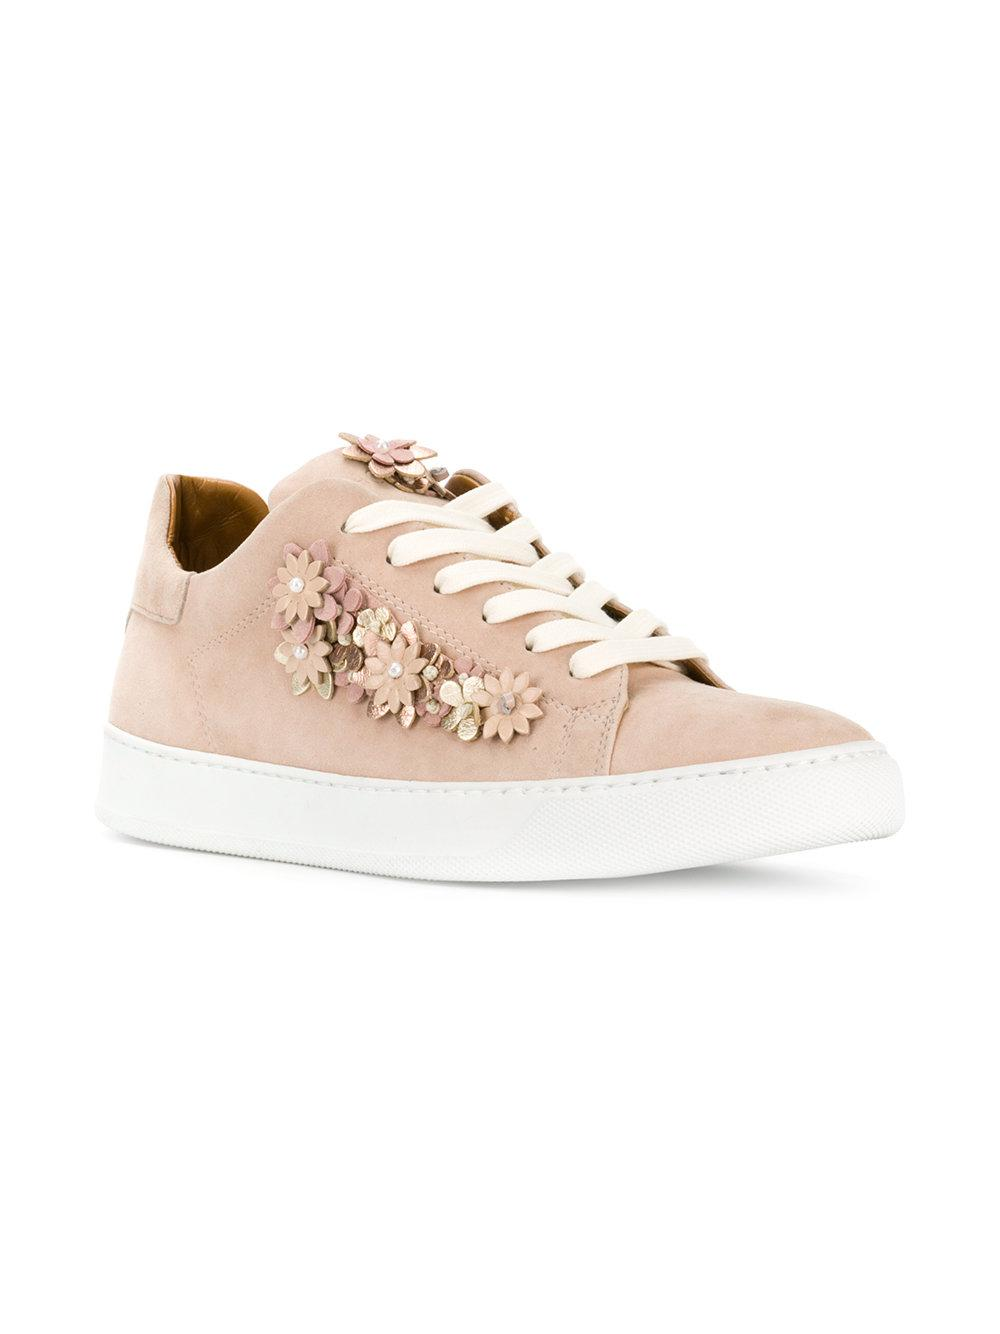 Black Dioniso Leather Floral Appliqué Sneakers in Natural